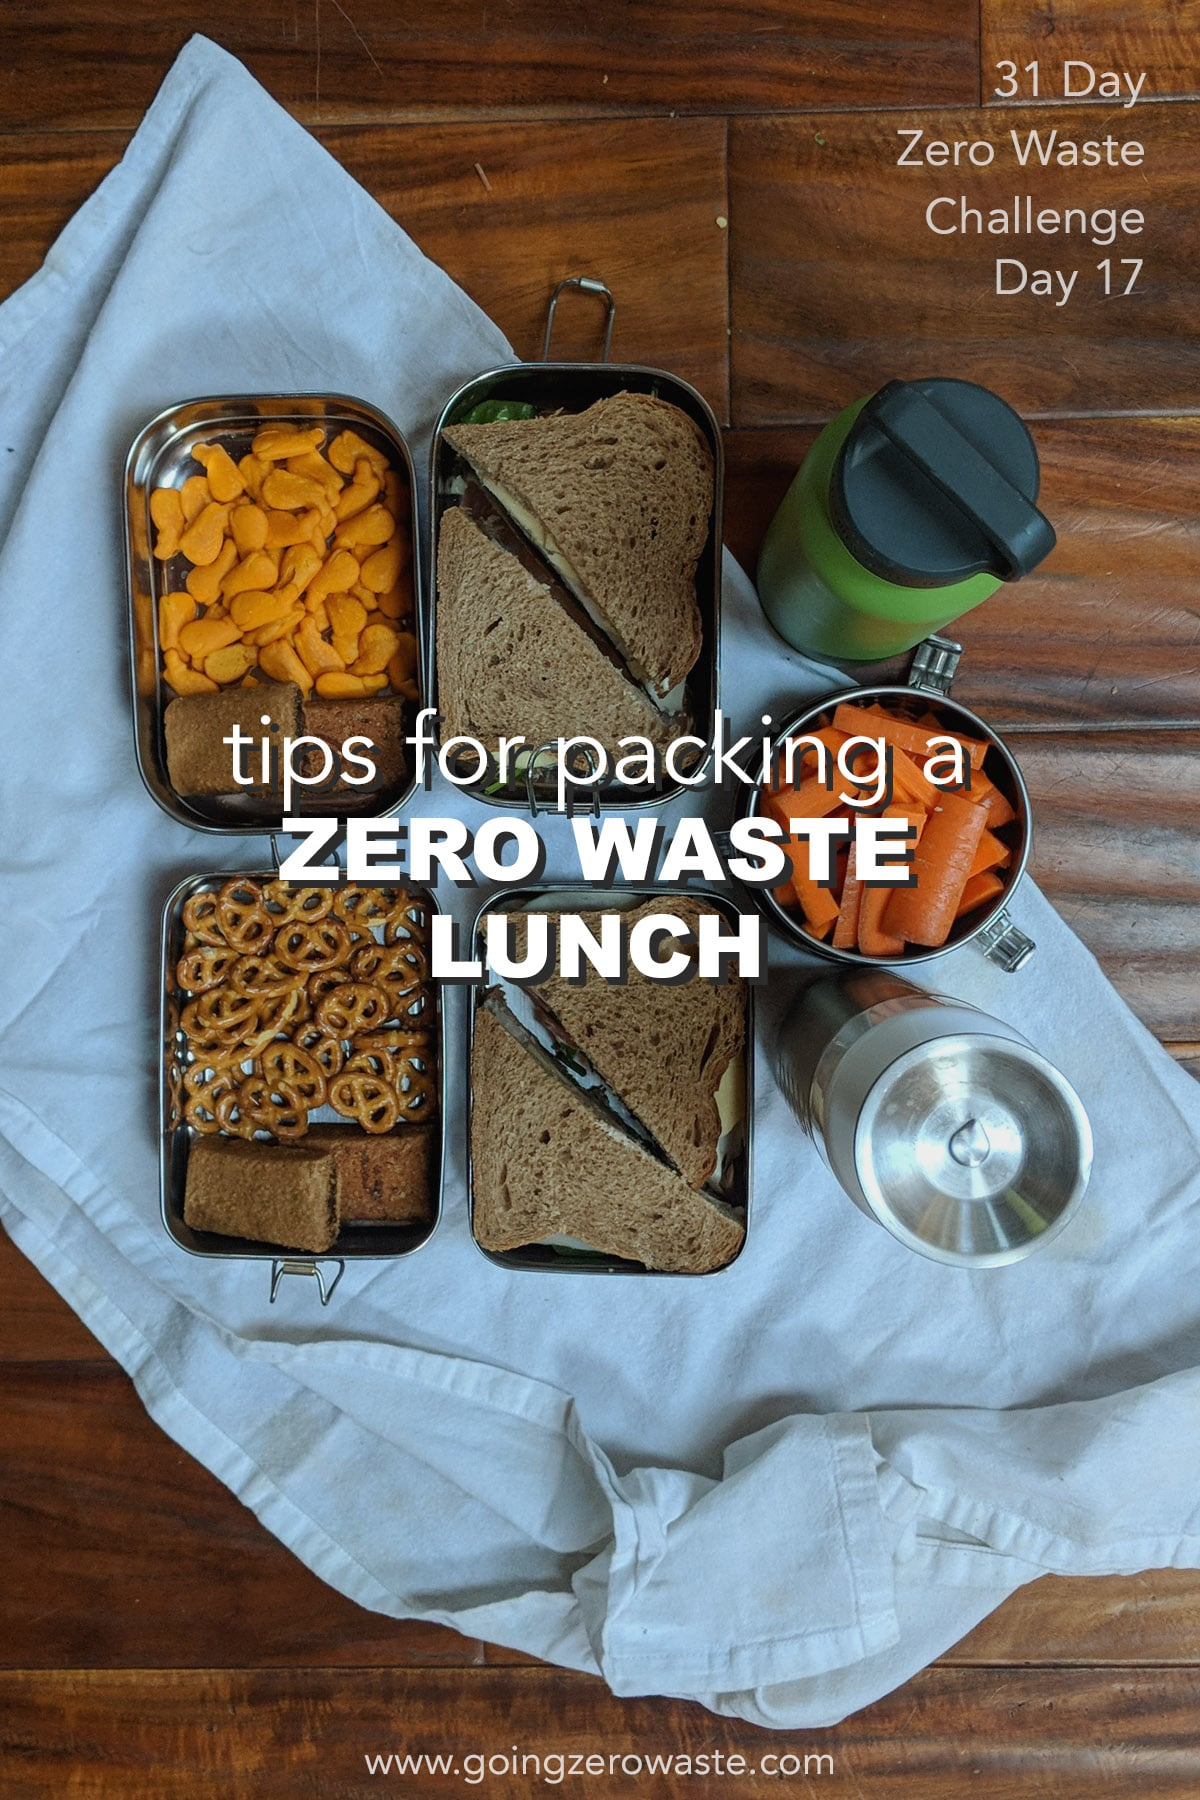 Pack a Zero Waste Lunch - Day 17 of the Zero Waste Challenge